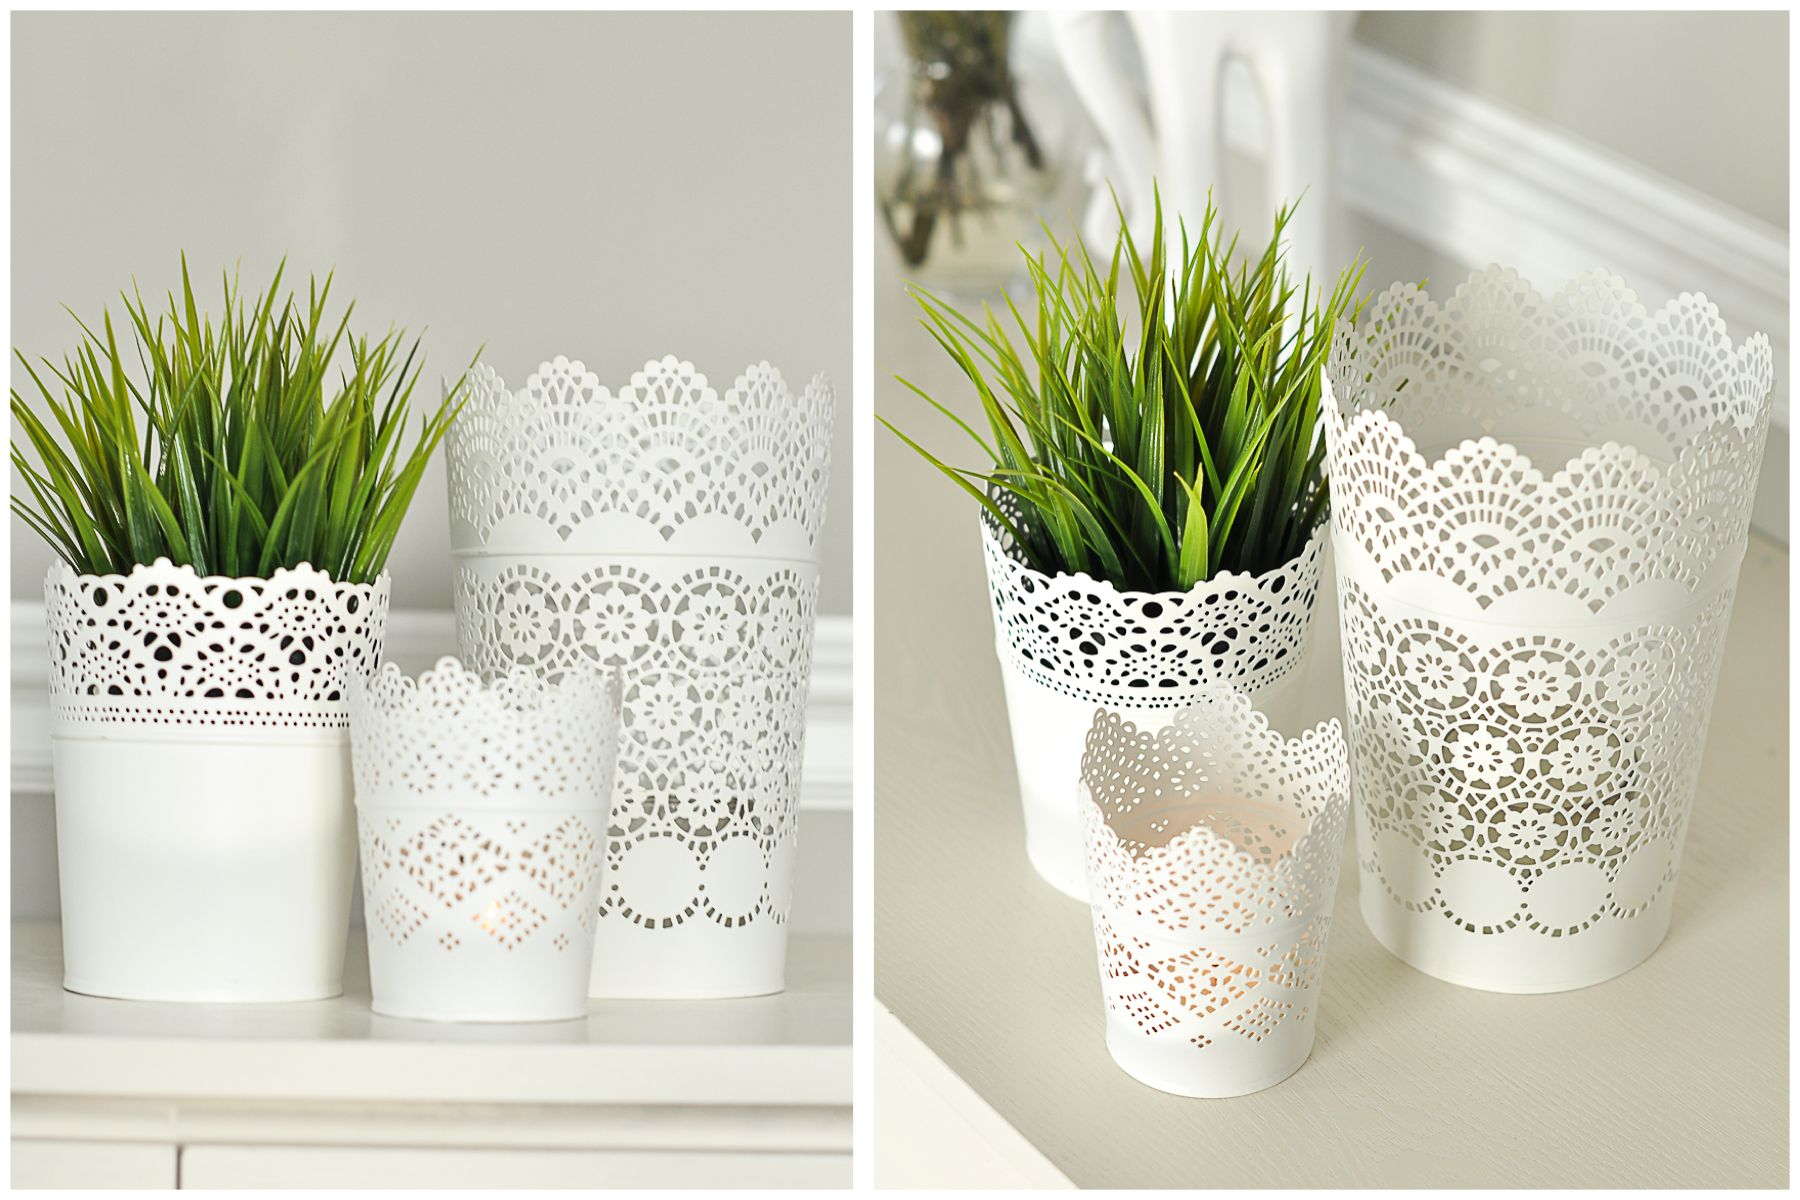 Skurar inredning pinterest receptions planters and centerpieces ikea skurar white vasesflower floridaeventfo Image collections